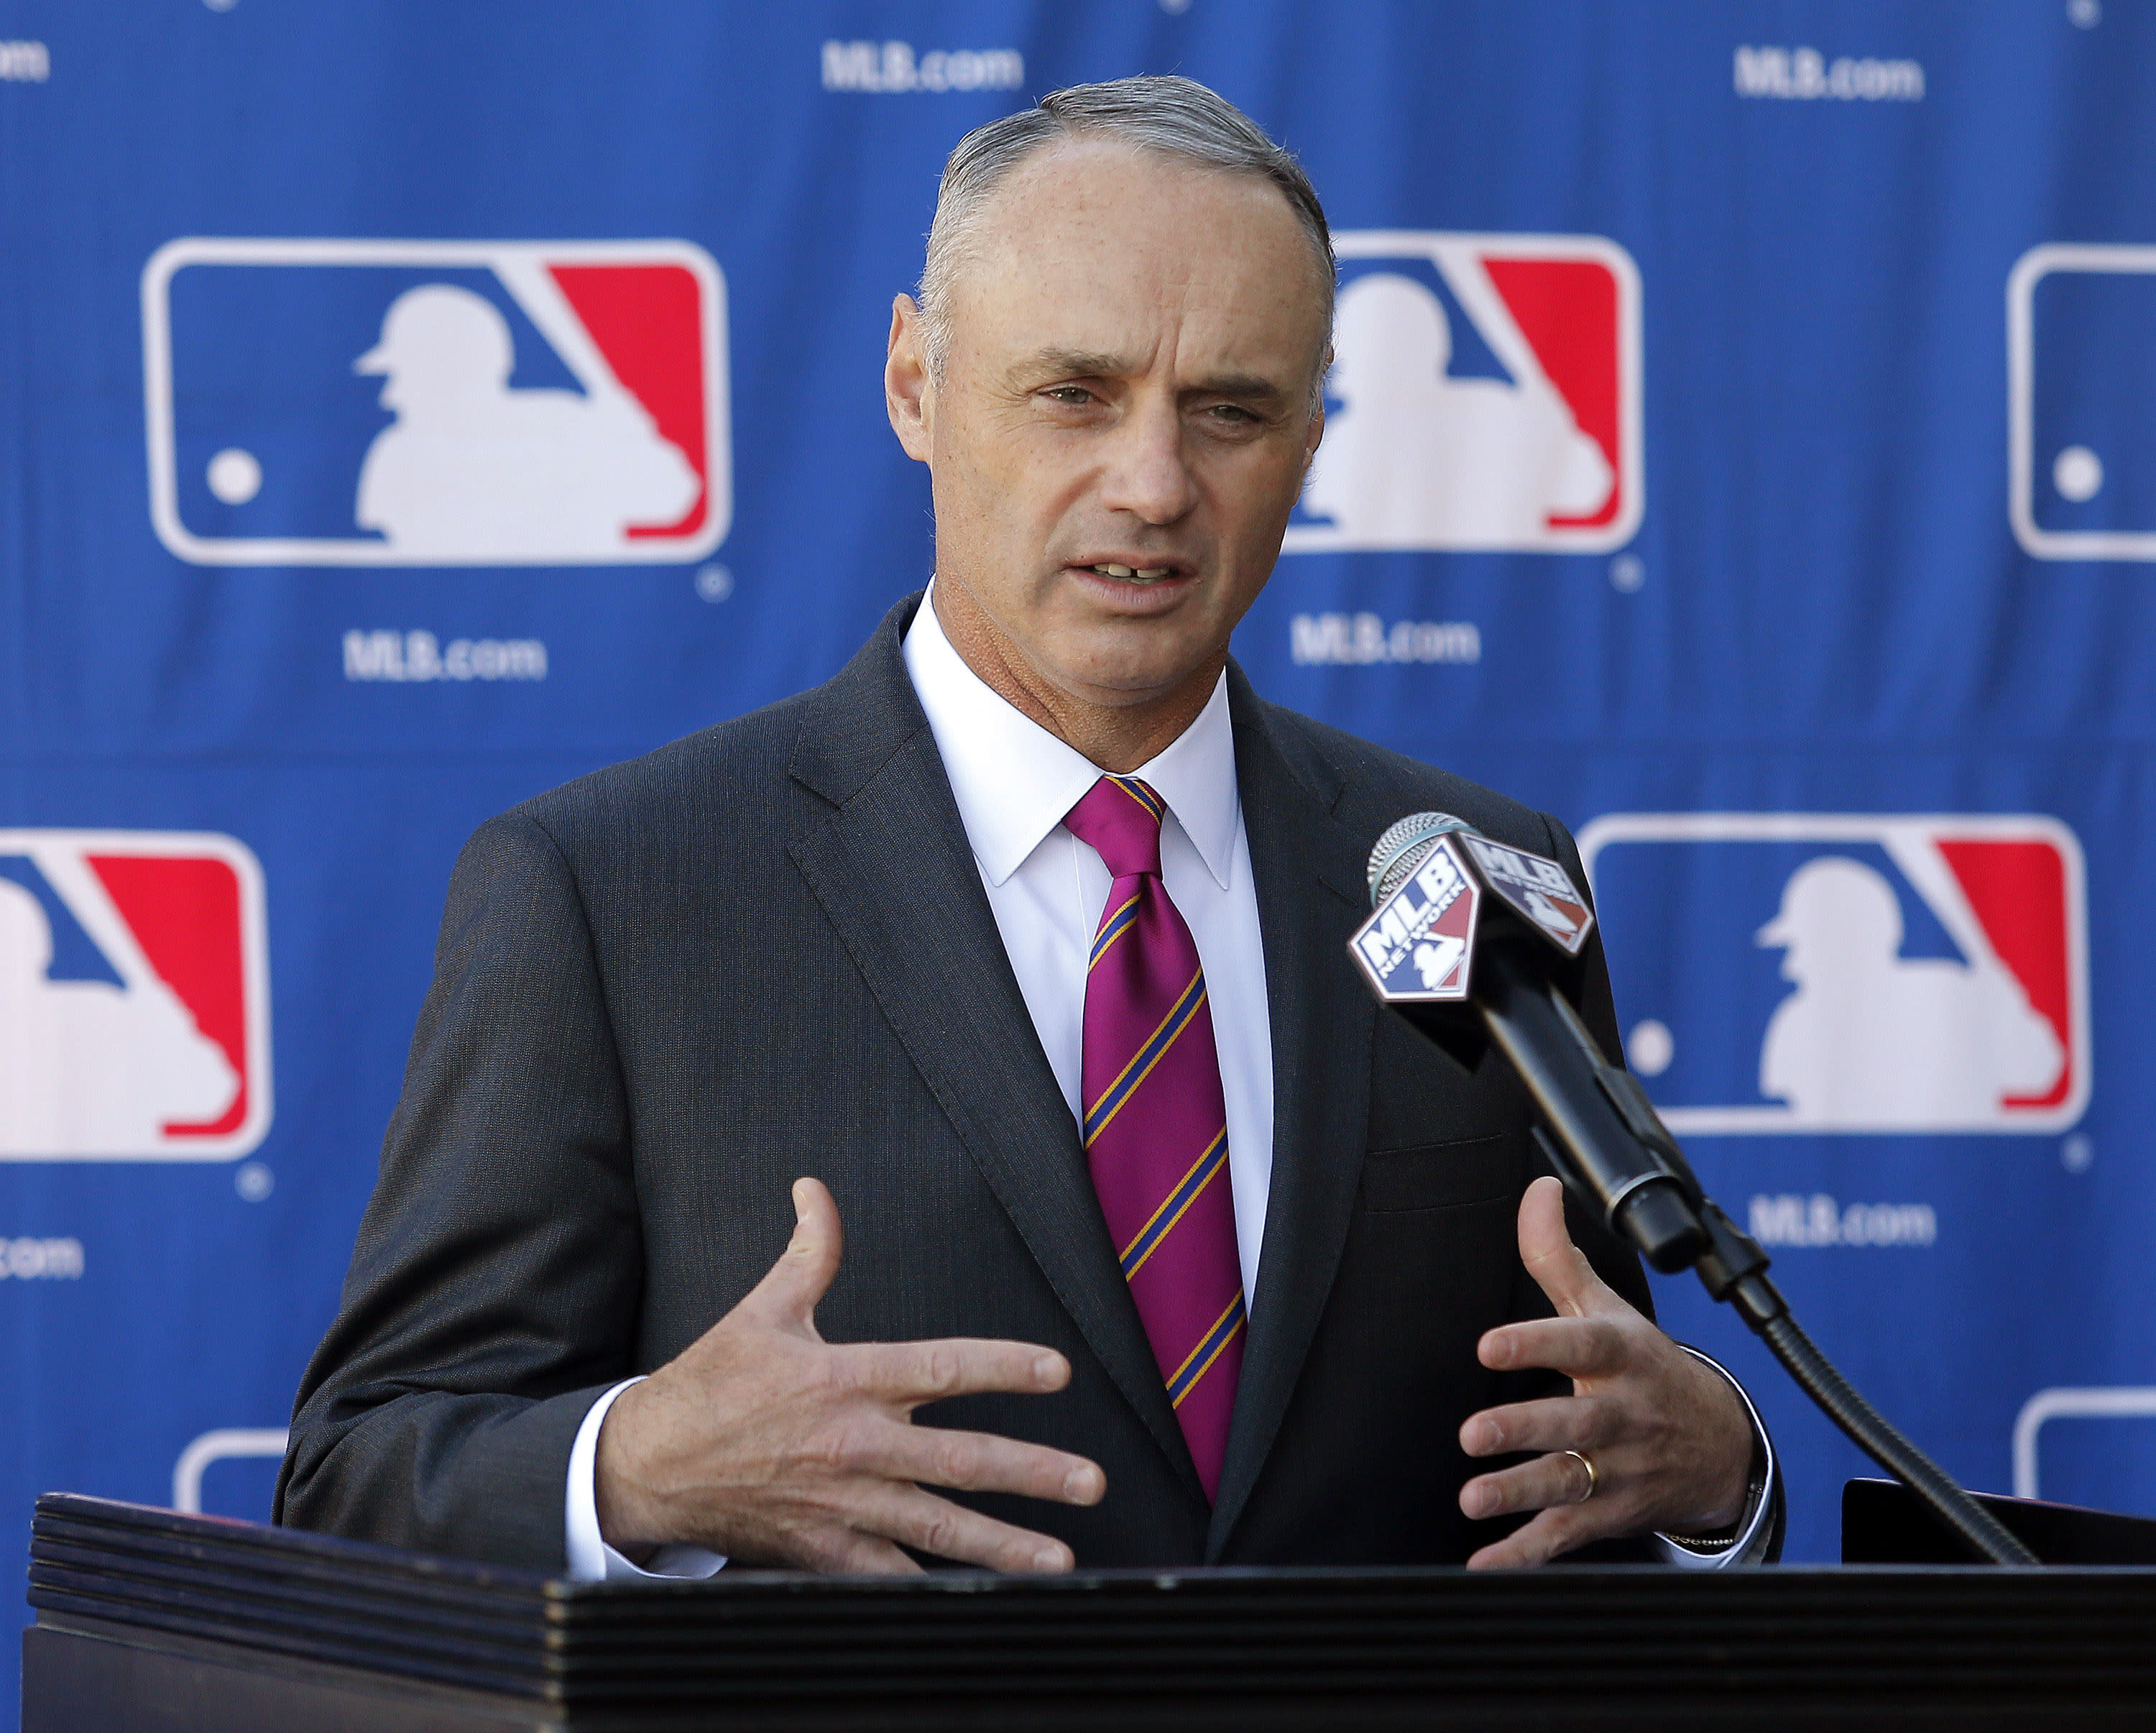 Manfred knows he'll get hit as commish _ his name is on ball